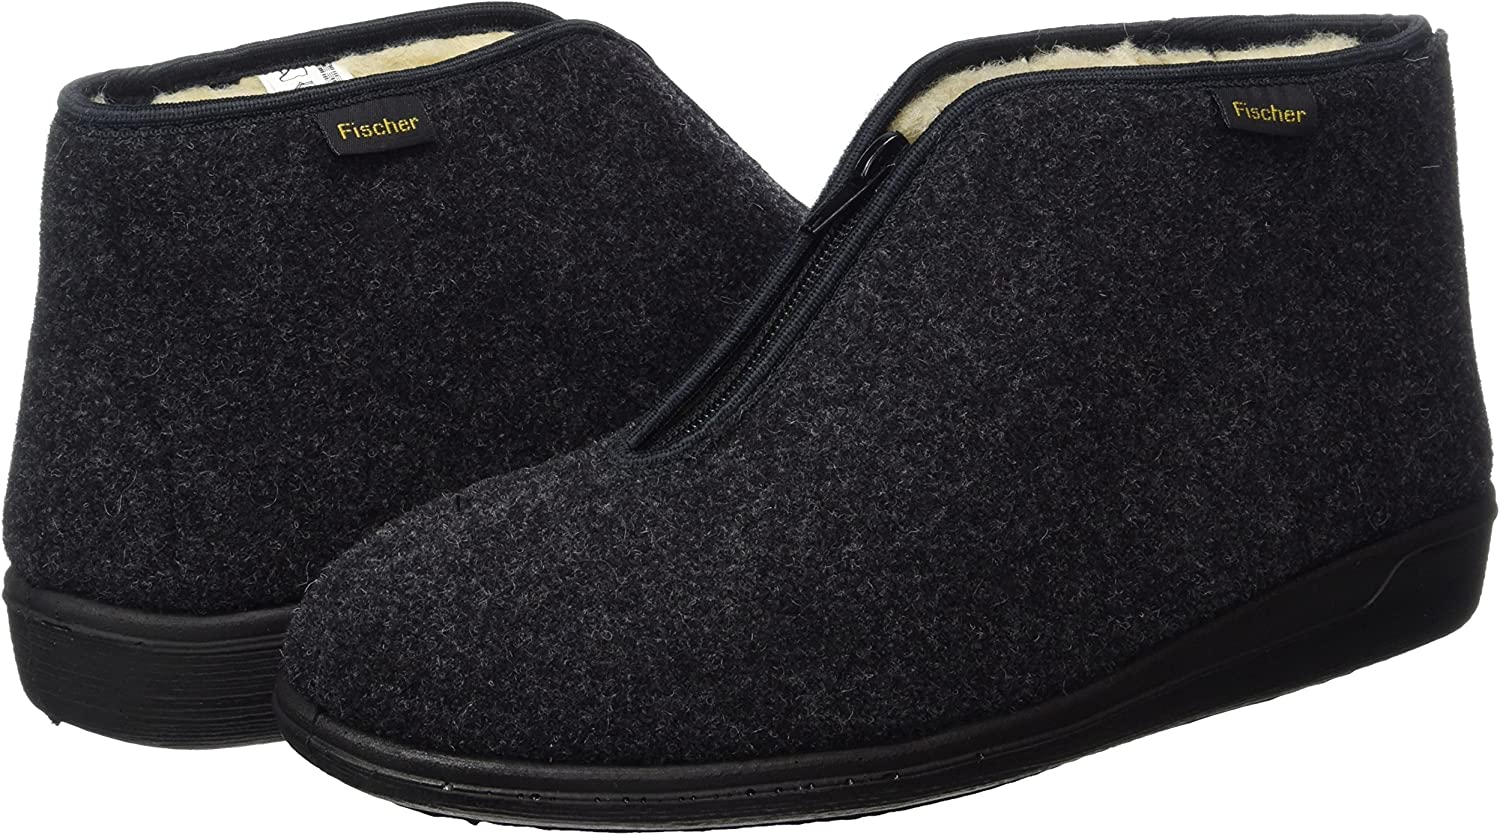 fischer Frank Chaussons Montants Homme